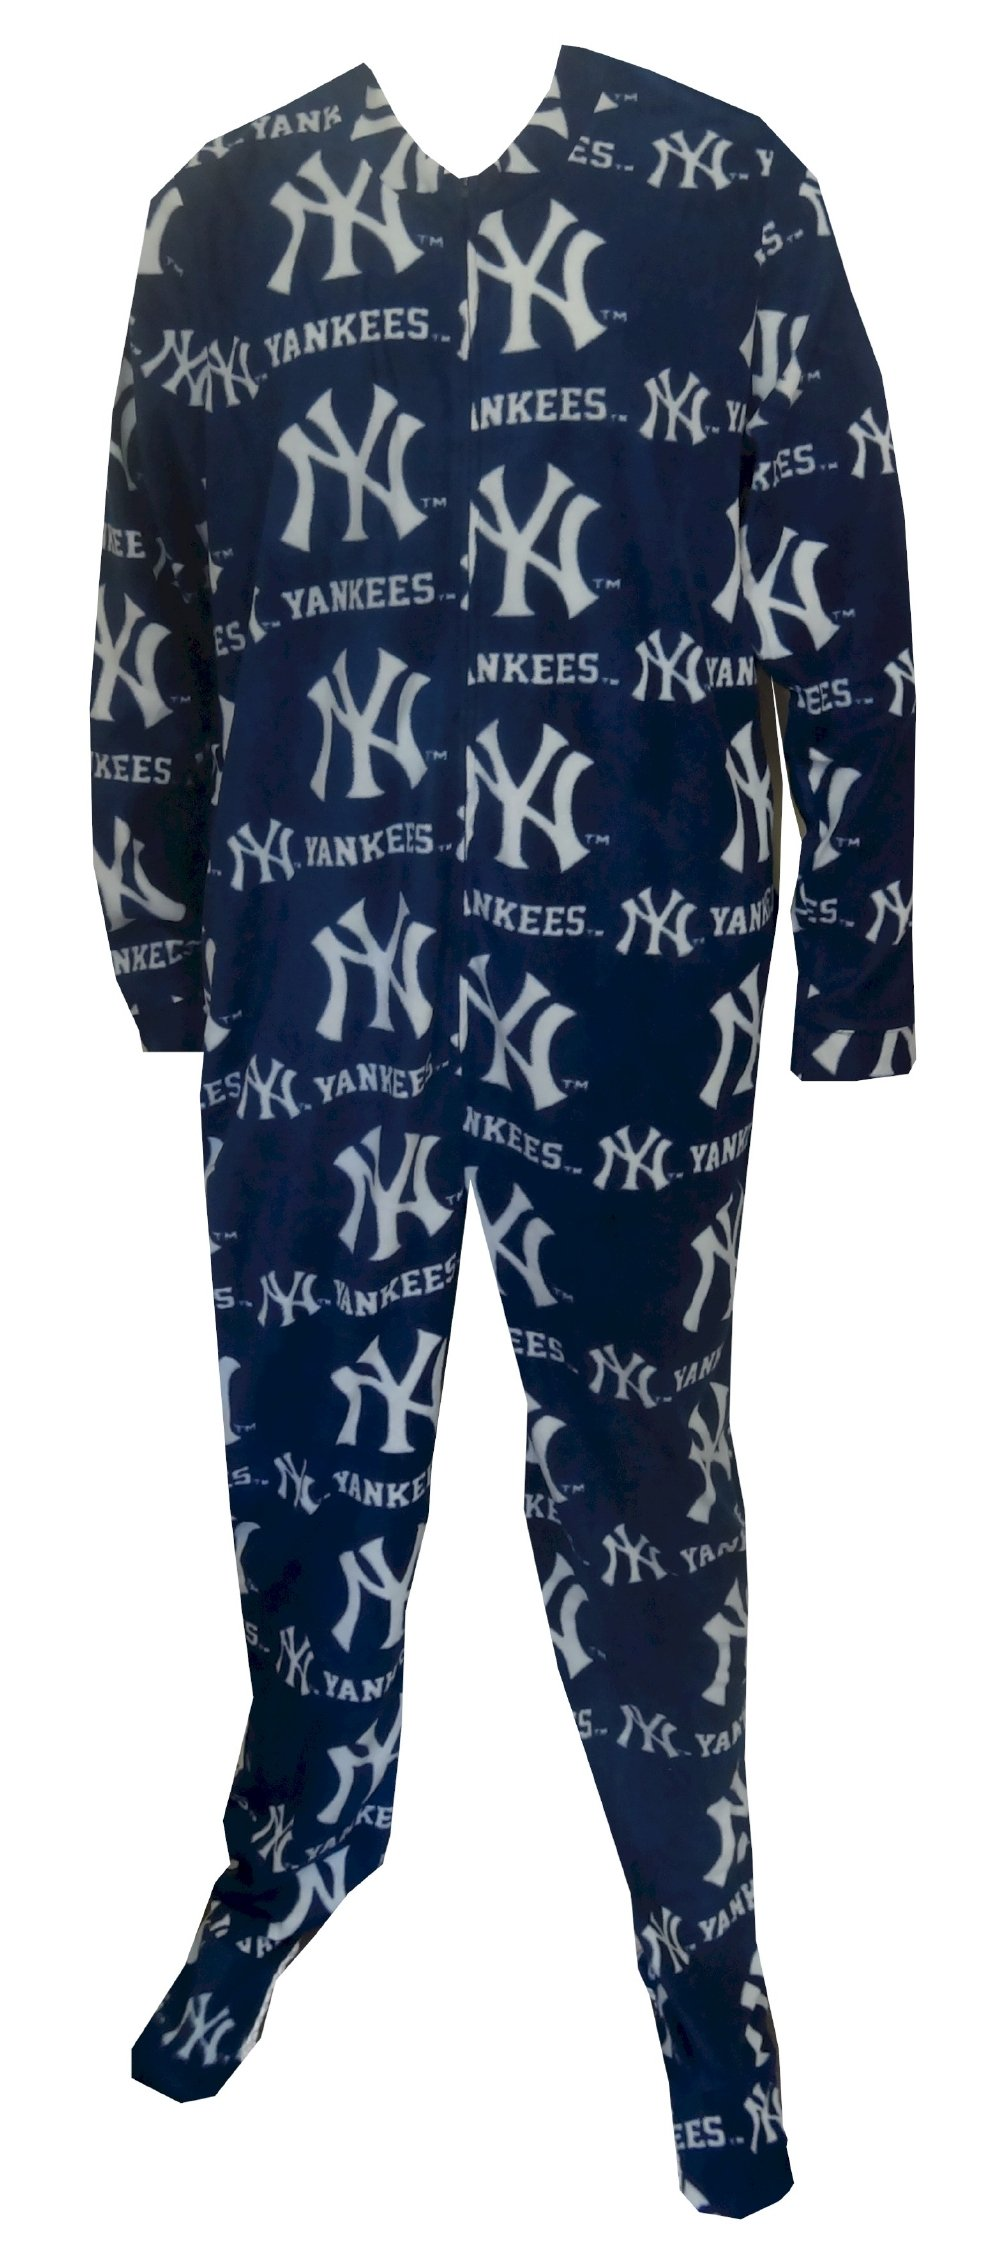 New York Yankees Guys Onesie Footie Pajama for men